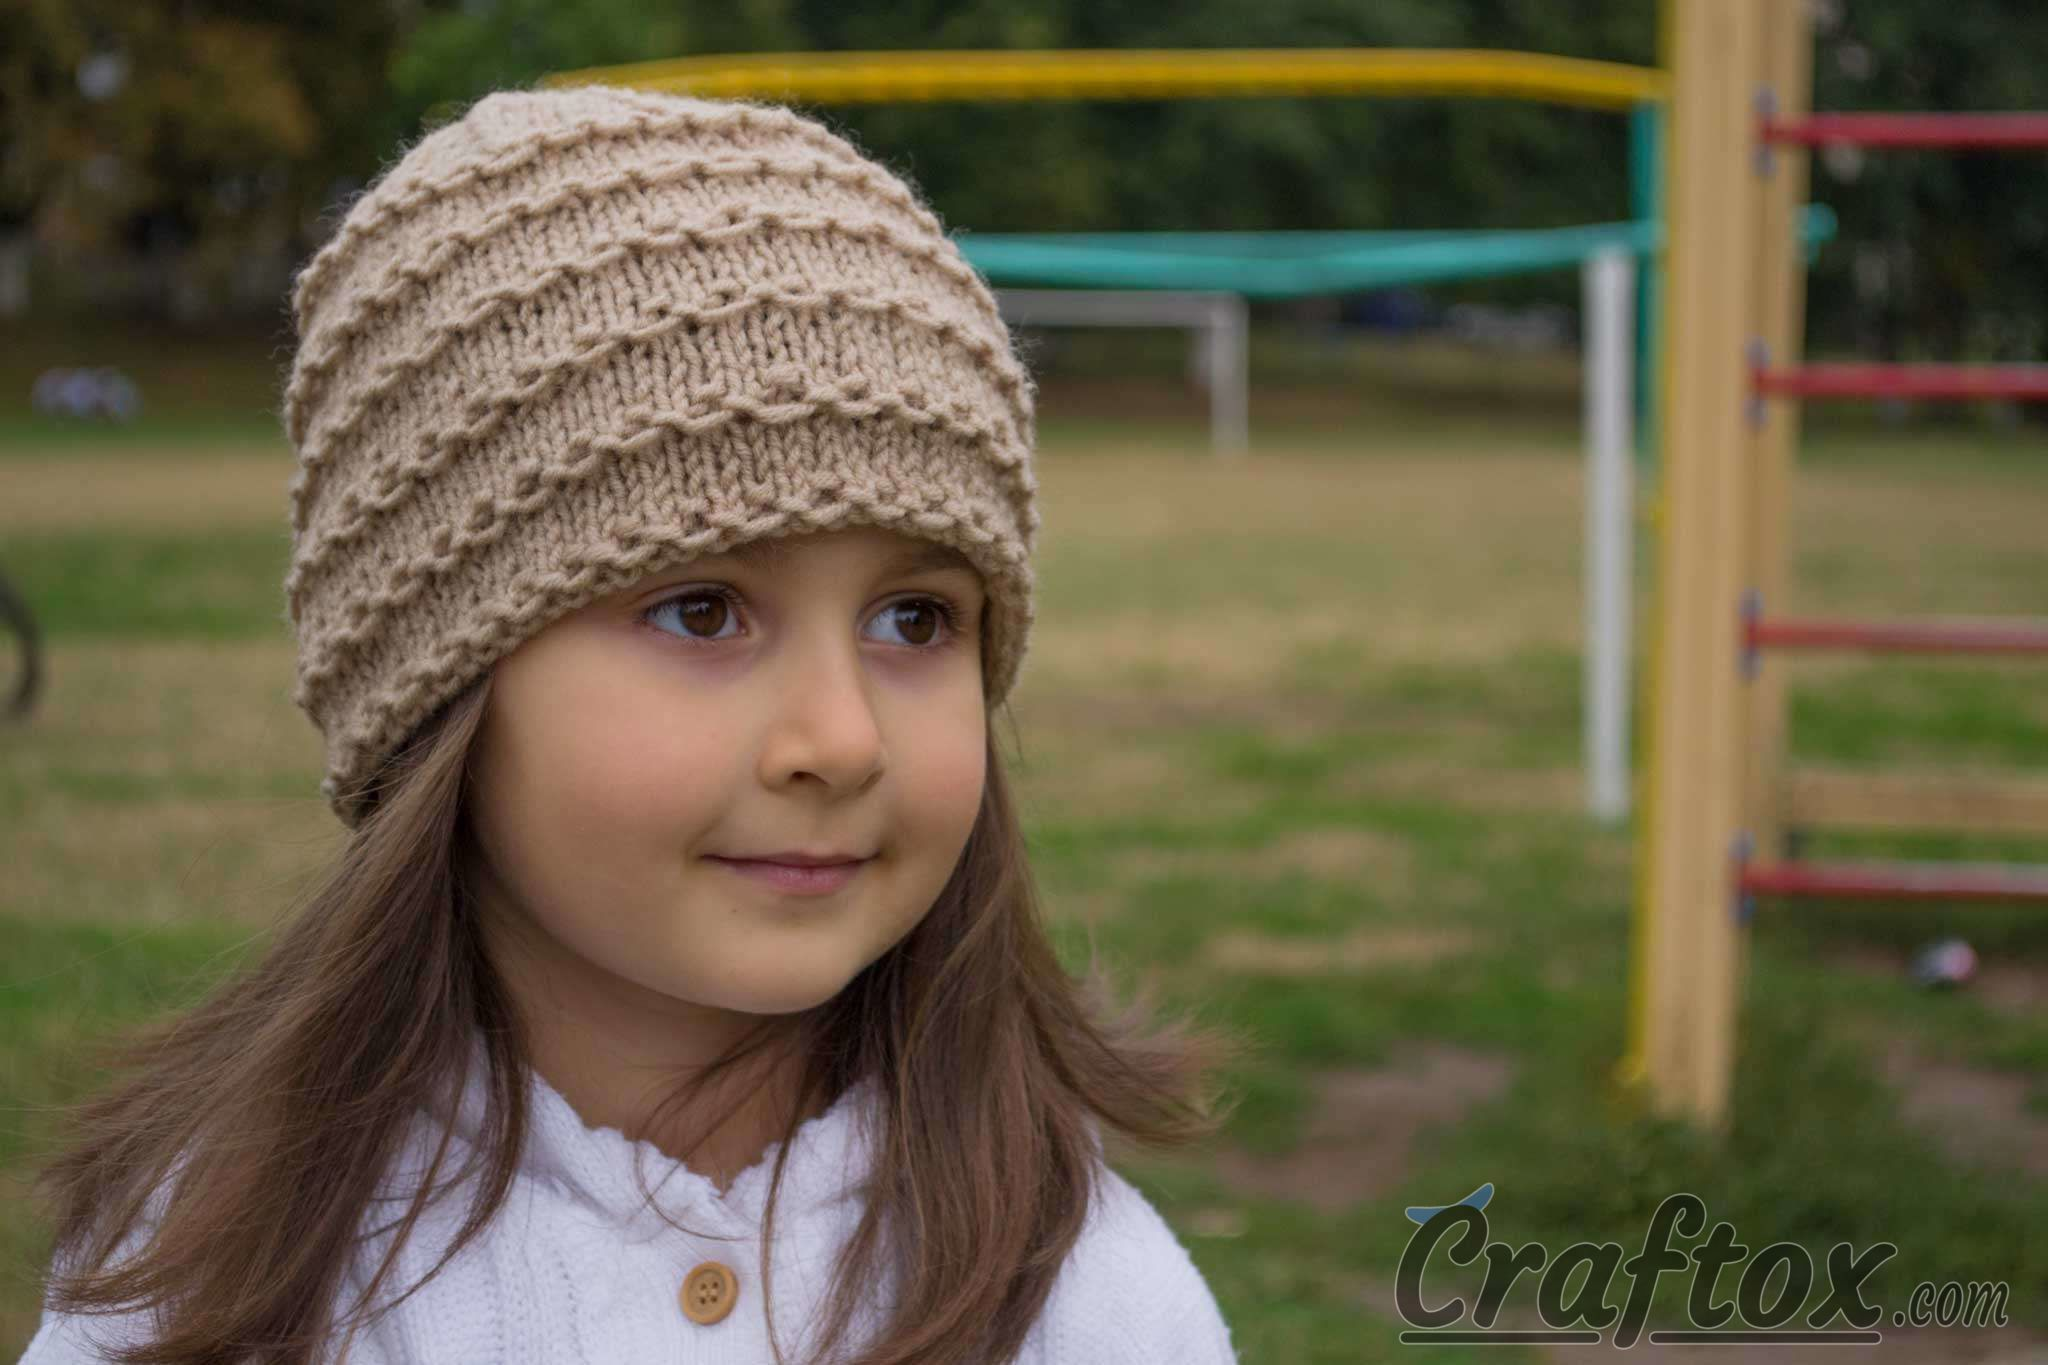 Simple Knitting Patterns Free : Easy beanie knitting pattern. Free.